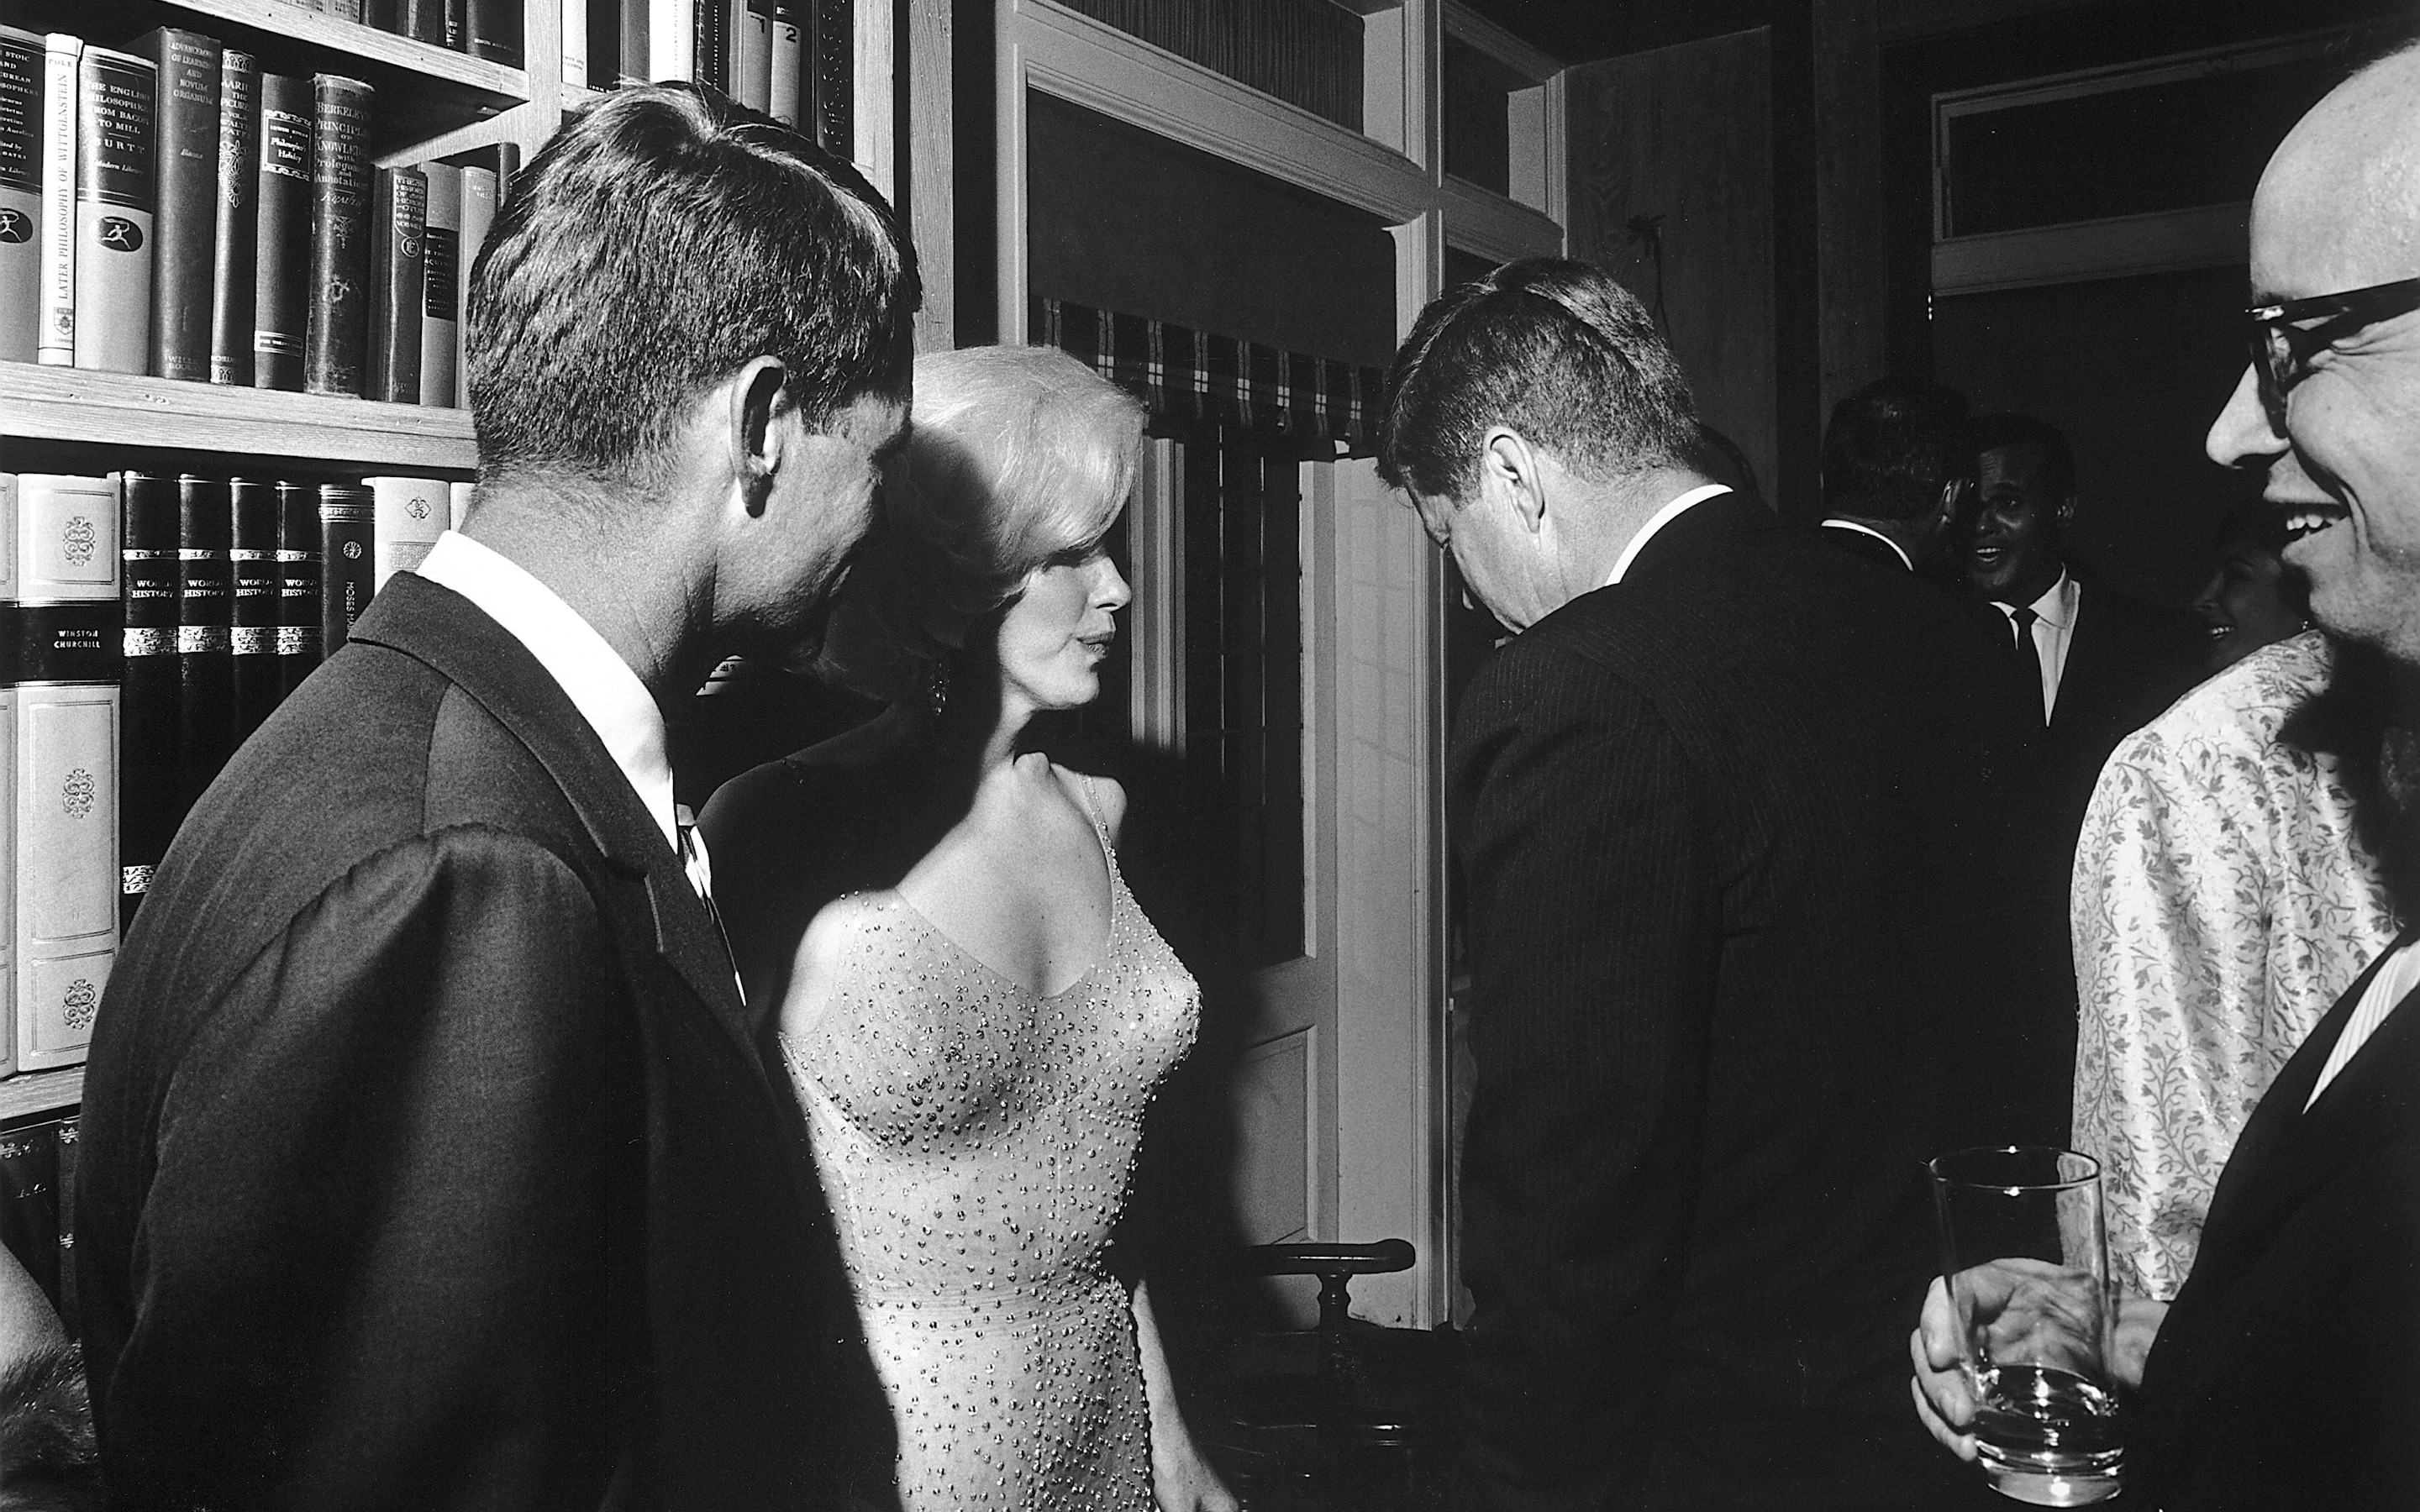 JFK and Marilyn Monroe 1962